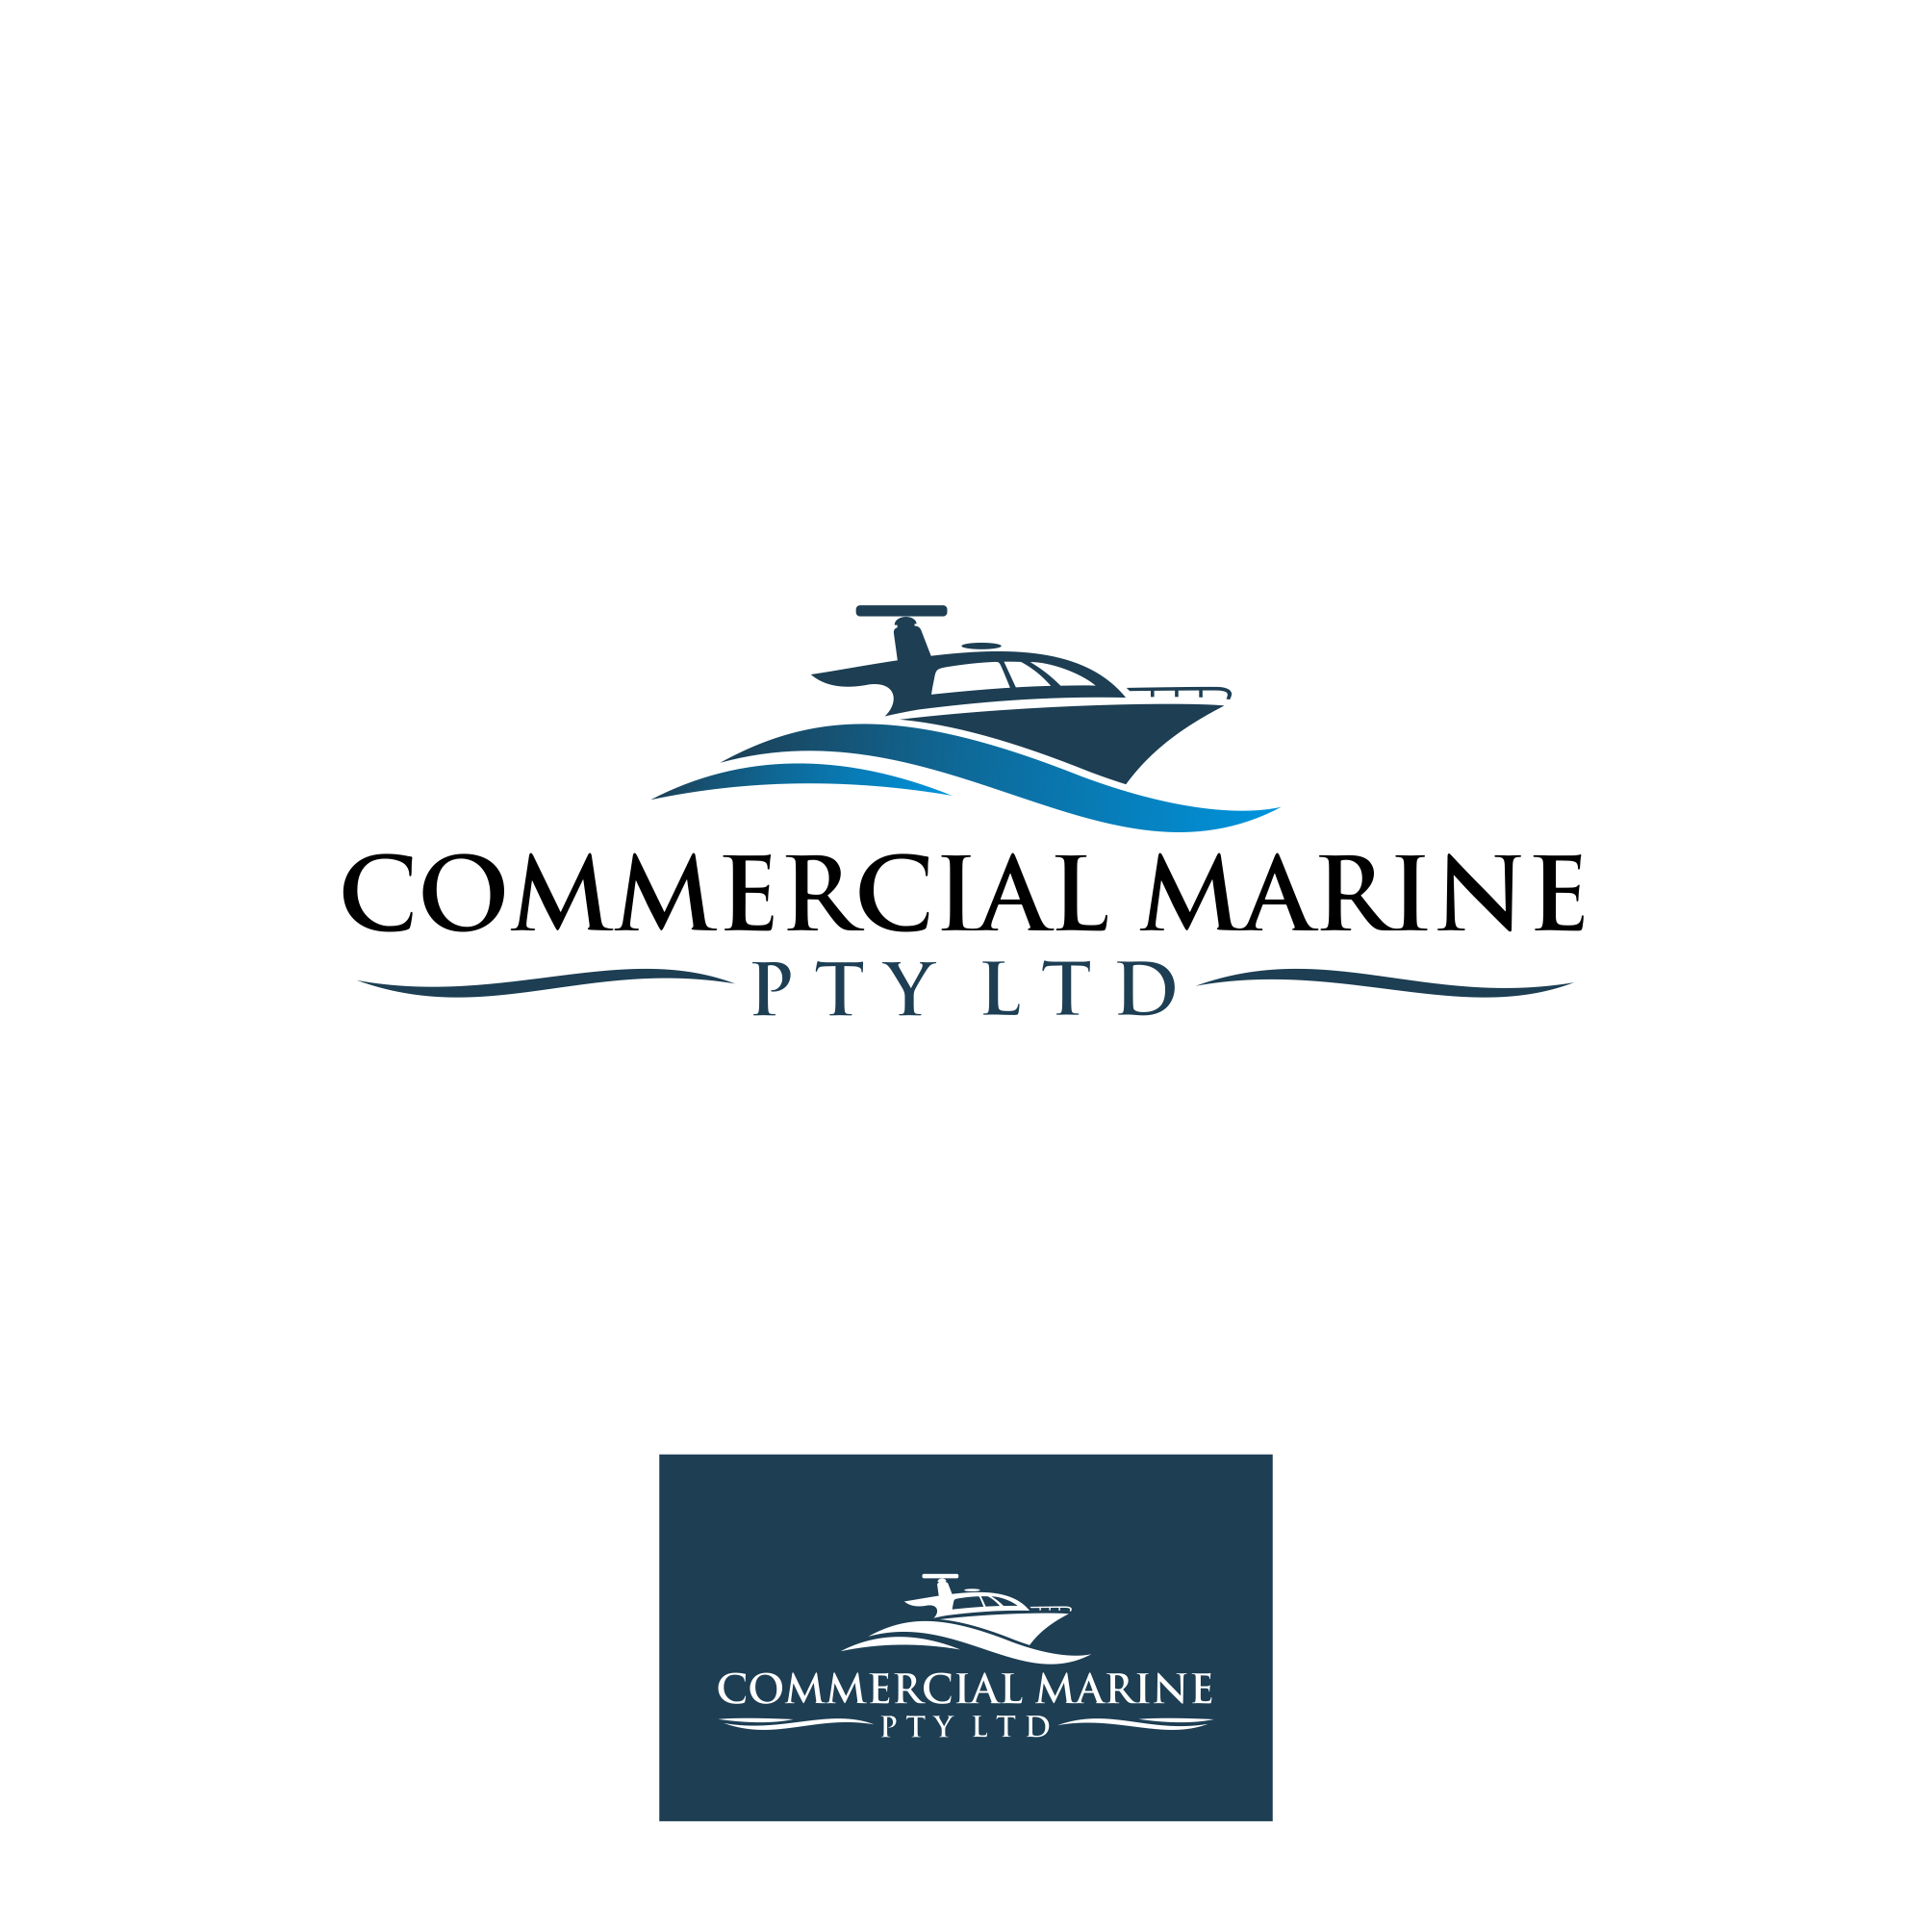 New logo wanted for Commercial Marine Pty Ltd